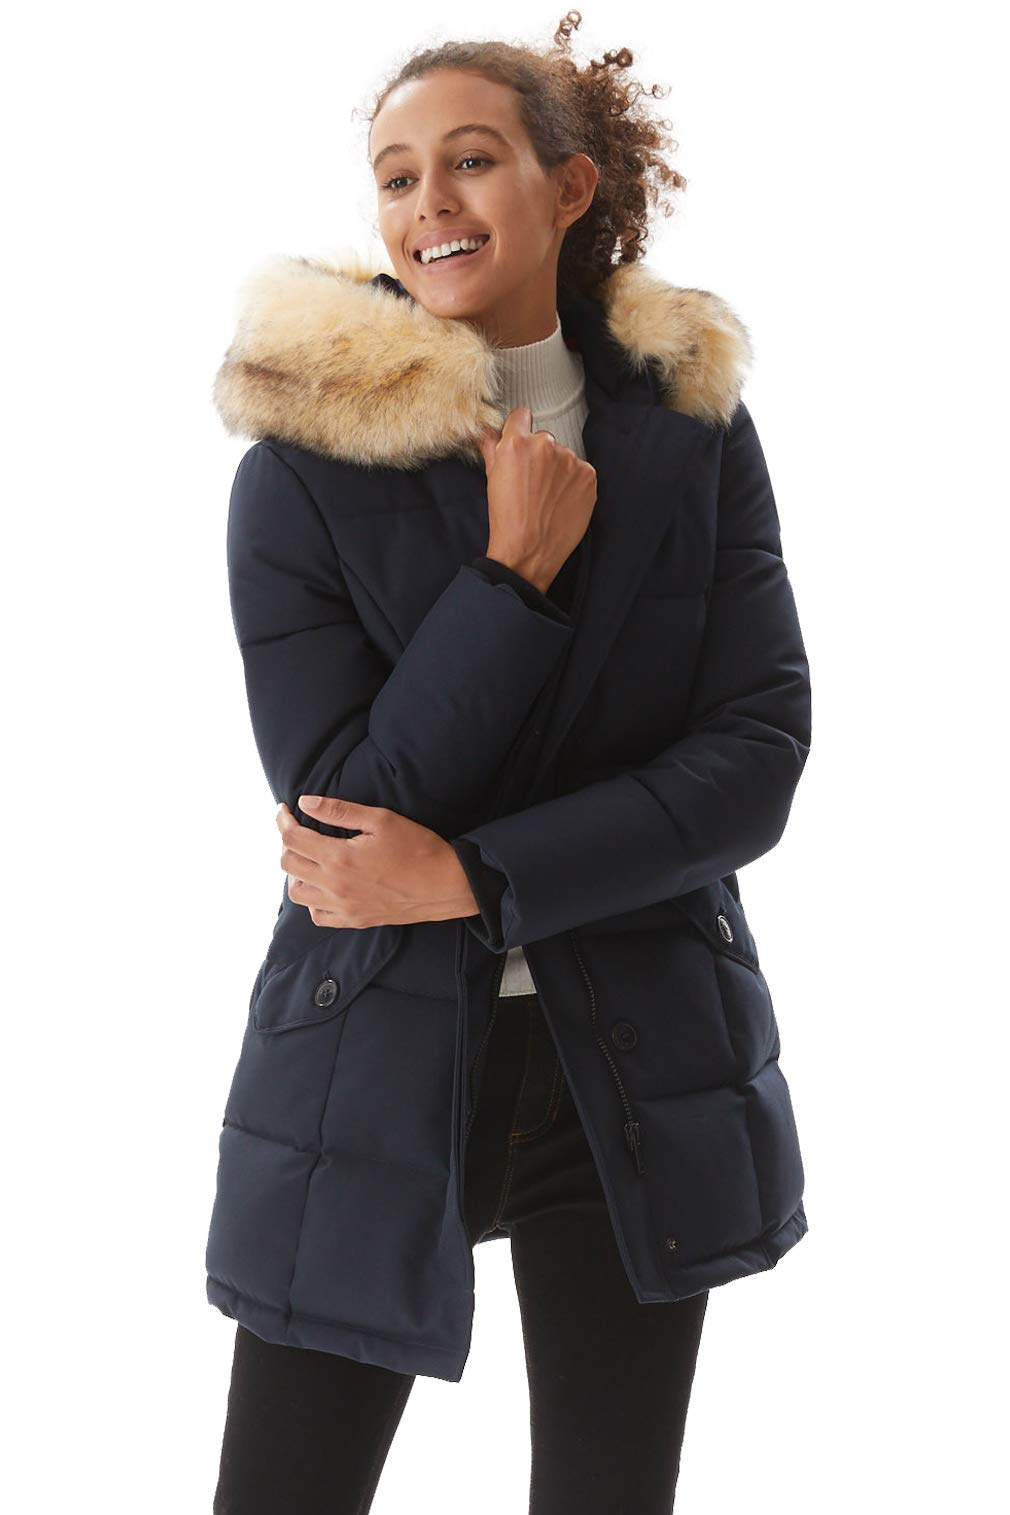 Molemsx Womens Winter Jacket, Womens Warm Puffer Coat Parka Jacket with Fur Trimmed Hood Navy Medium by Molemsx